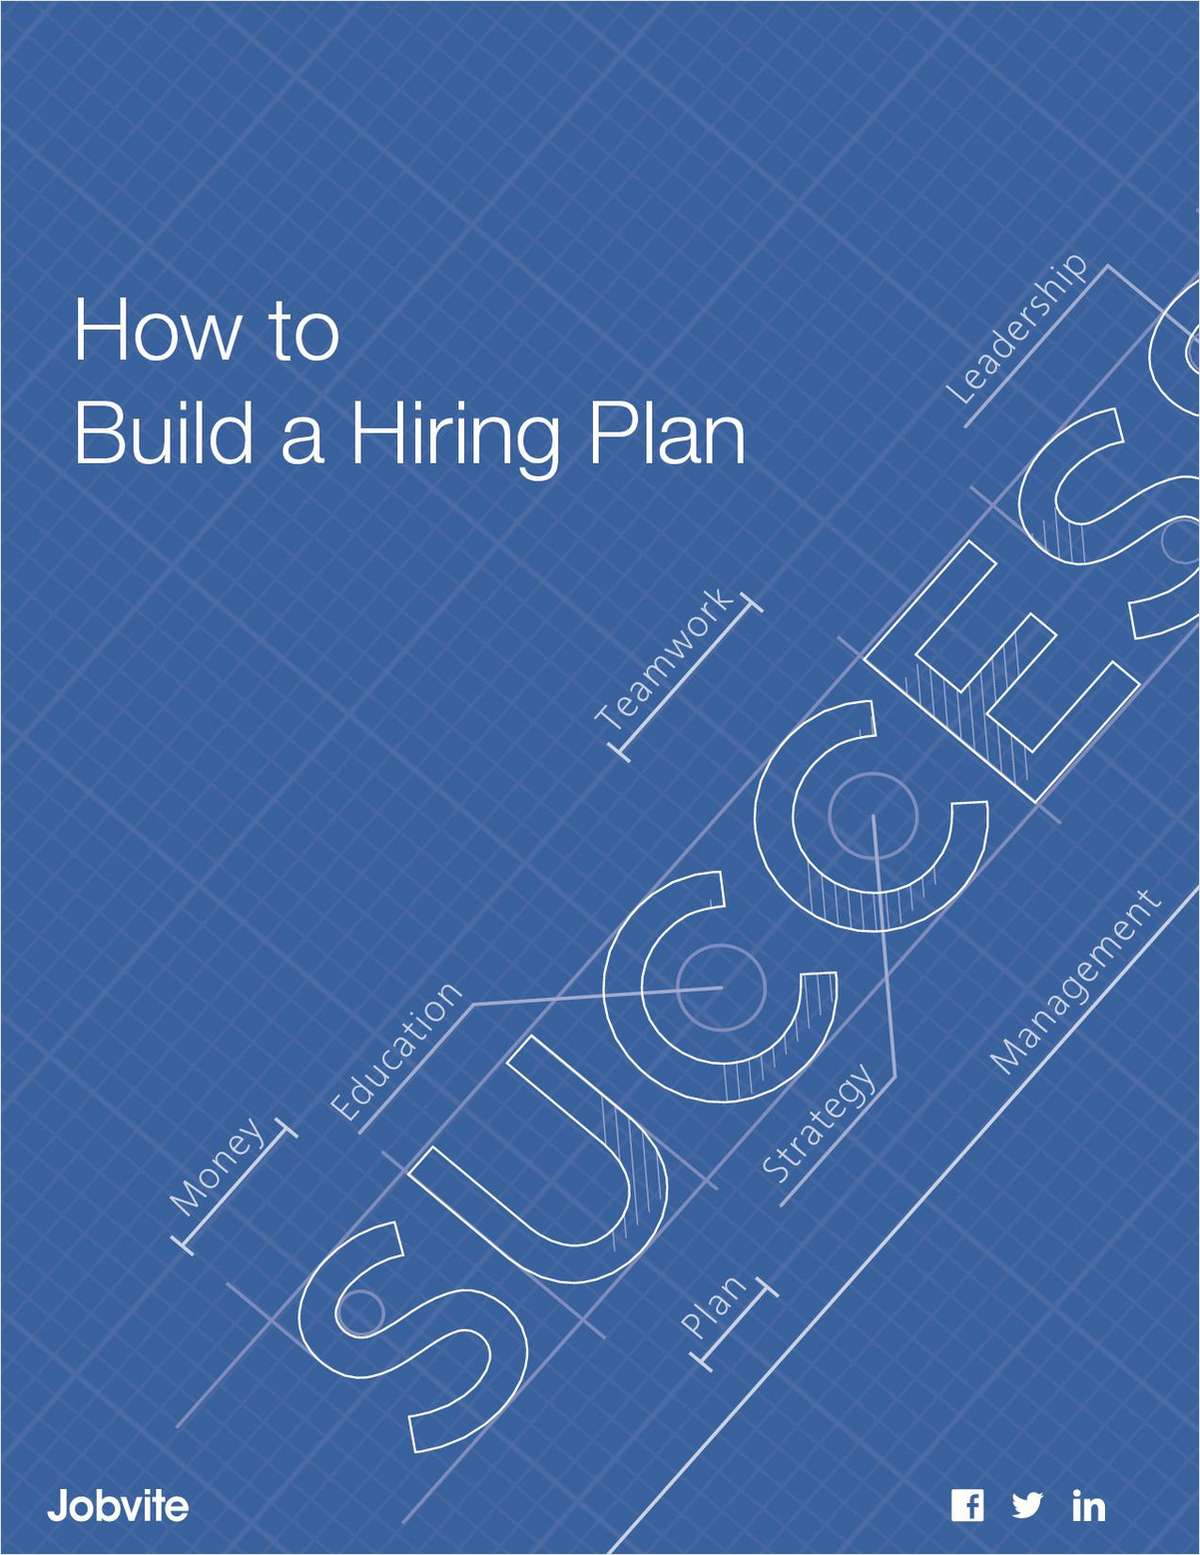 How to Build a Hiring Plan